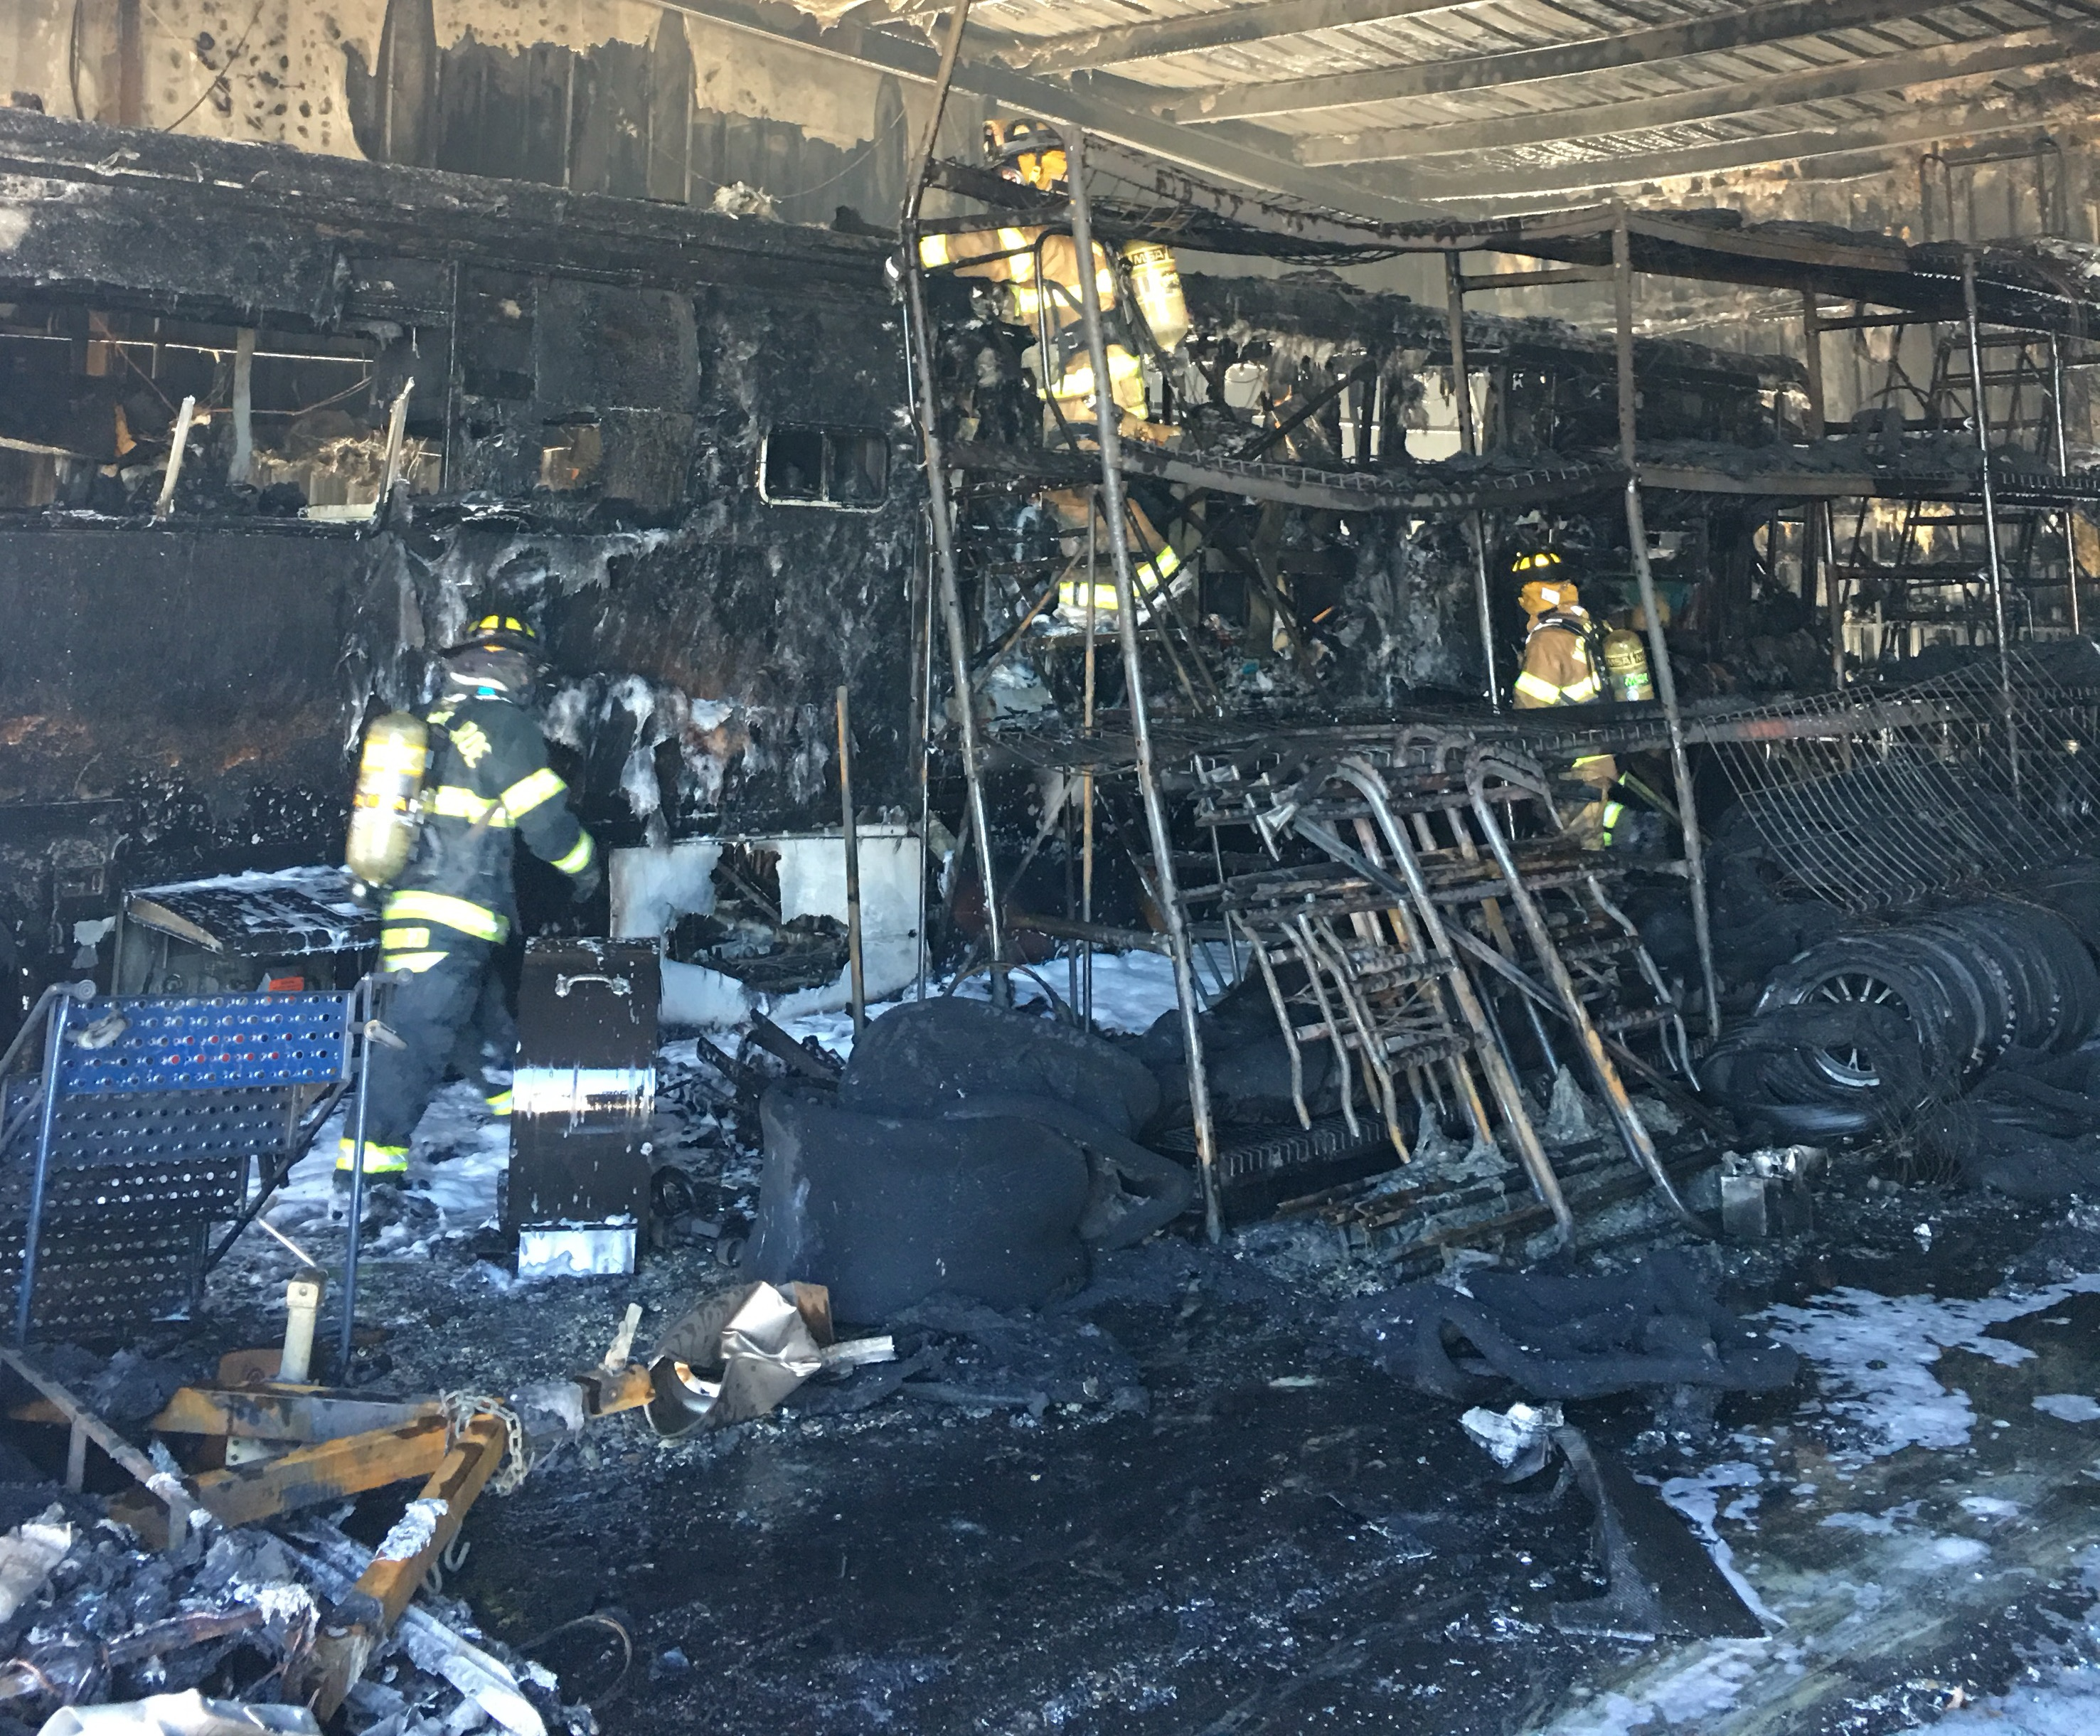 Millions Of Dollars Lost In Alarm Fire At Jerry Bickel Racing